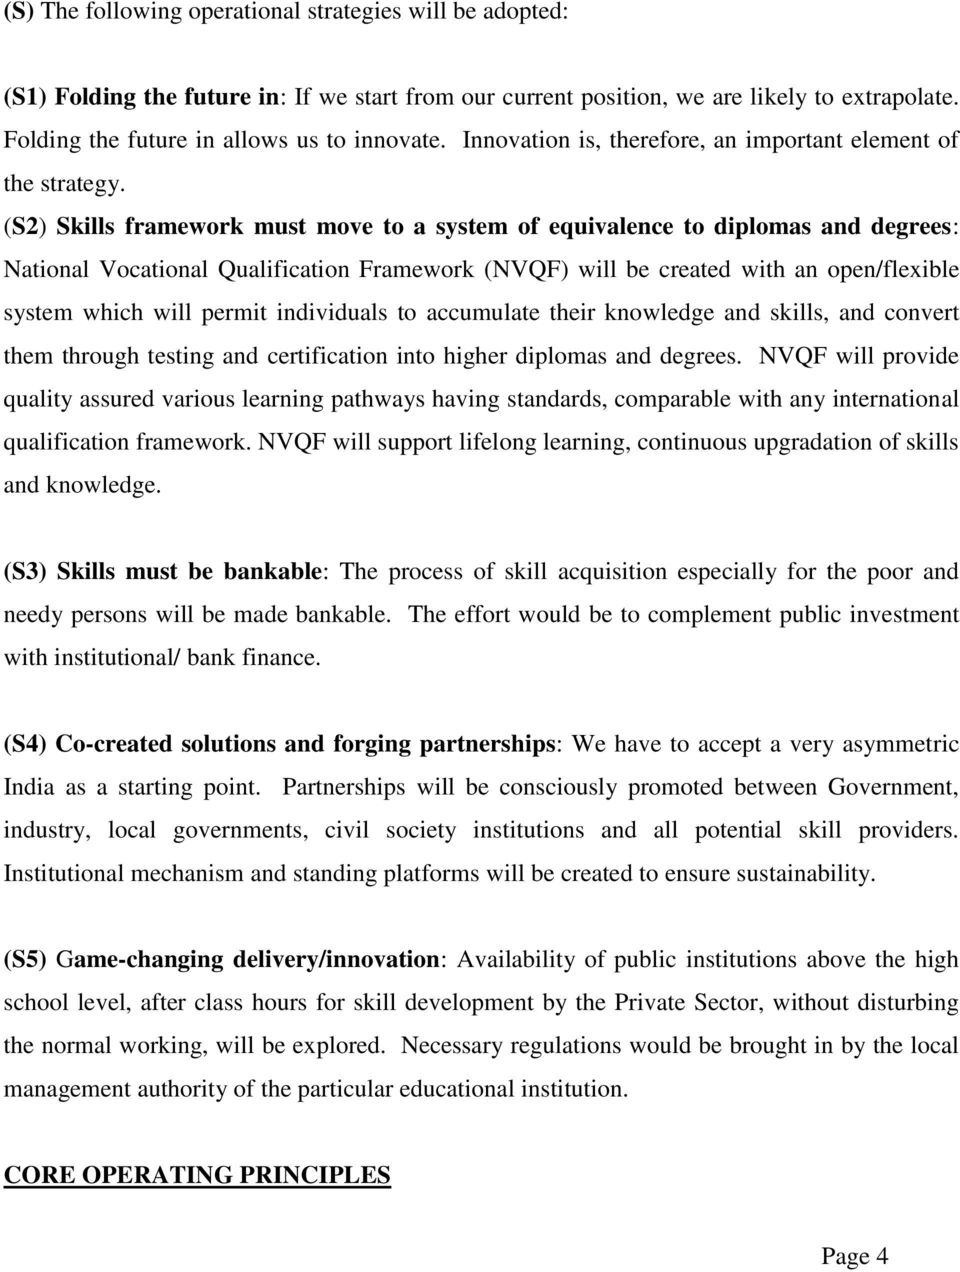 (S2) Skills framework must move to a system of equivalence to diplomas and degrees: National Vocational Qualification Framework (NVQF) will be created with an open/flexible system which will permit